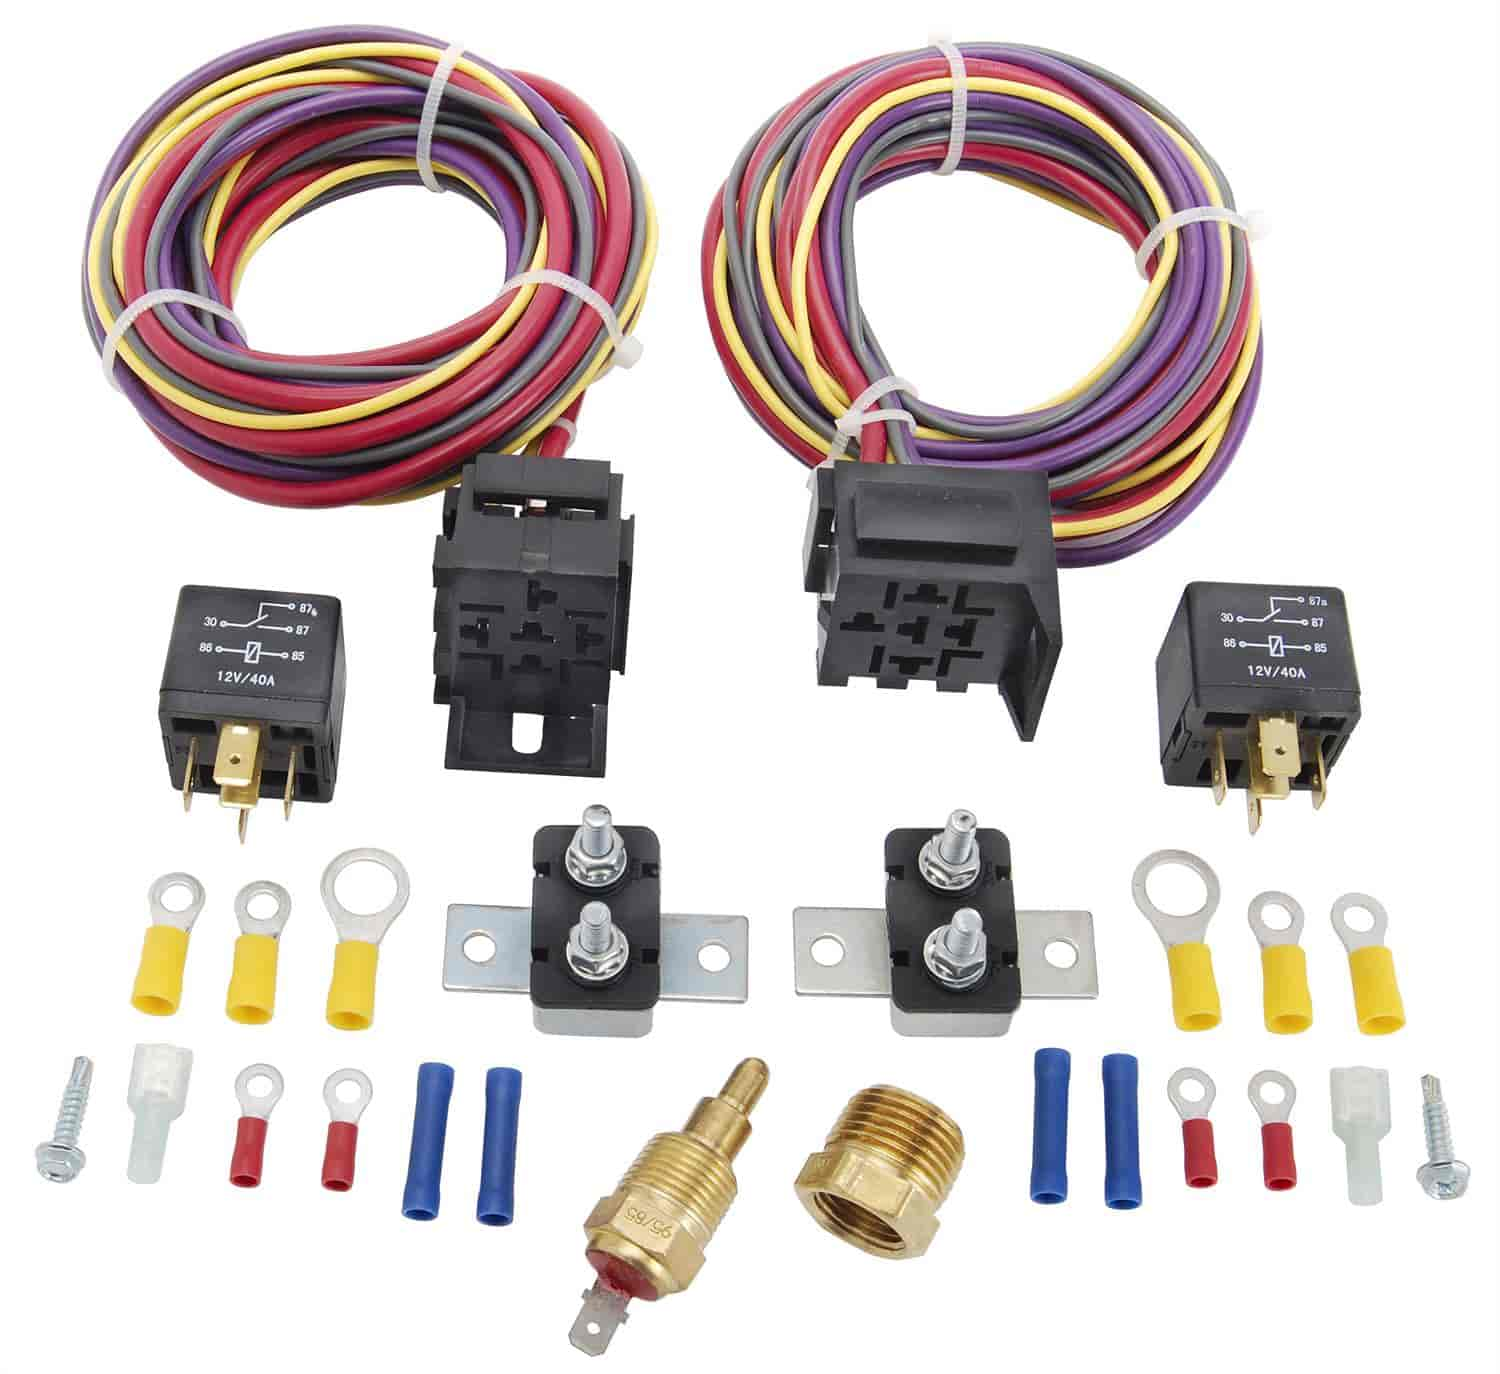 555 10571 jegs performance products 10571 dual fan wiring harness & relay jegs universal wiring harness at n-0.co